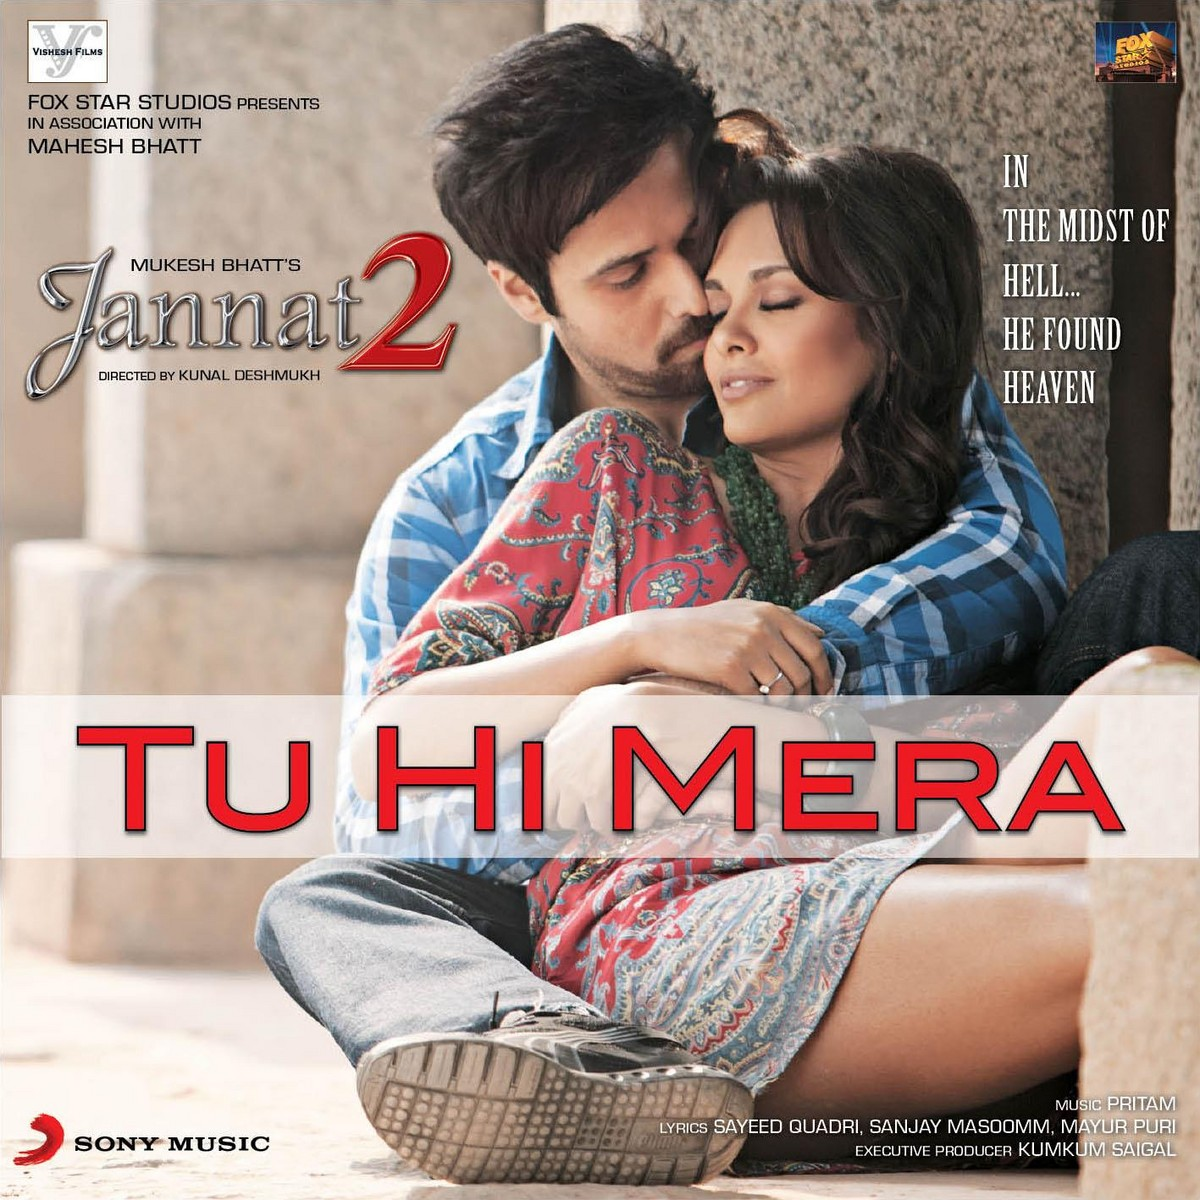 Jannat 2 - Movie Poster #4 (Original)